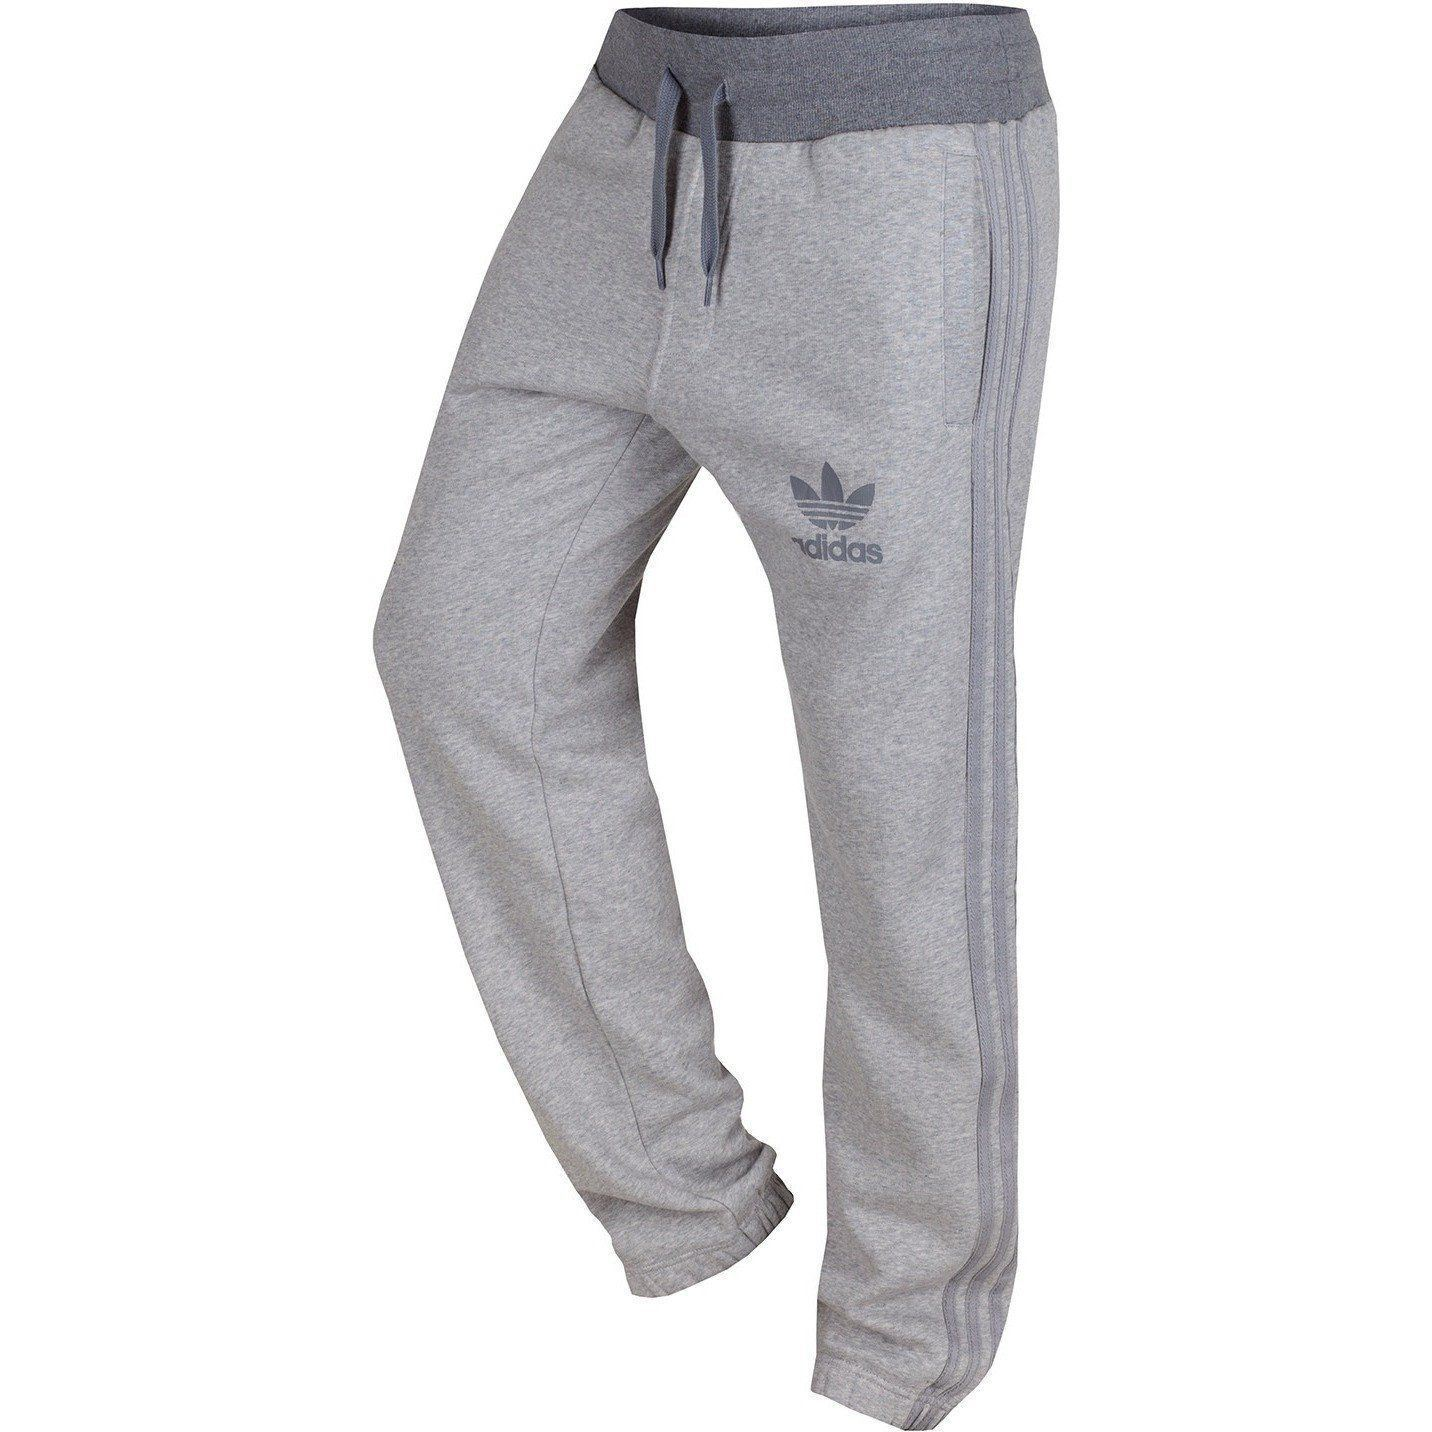 Where to buy adidas trackies in perth